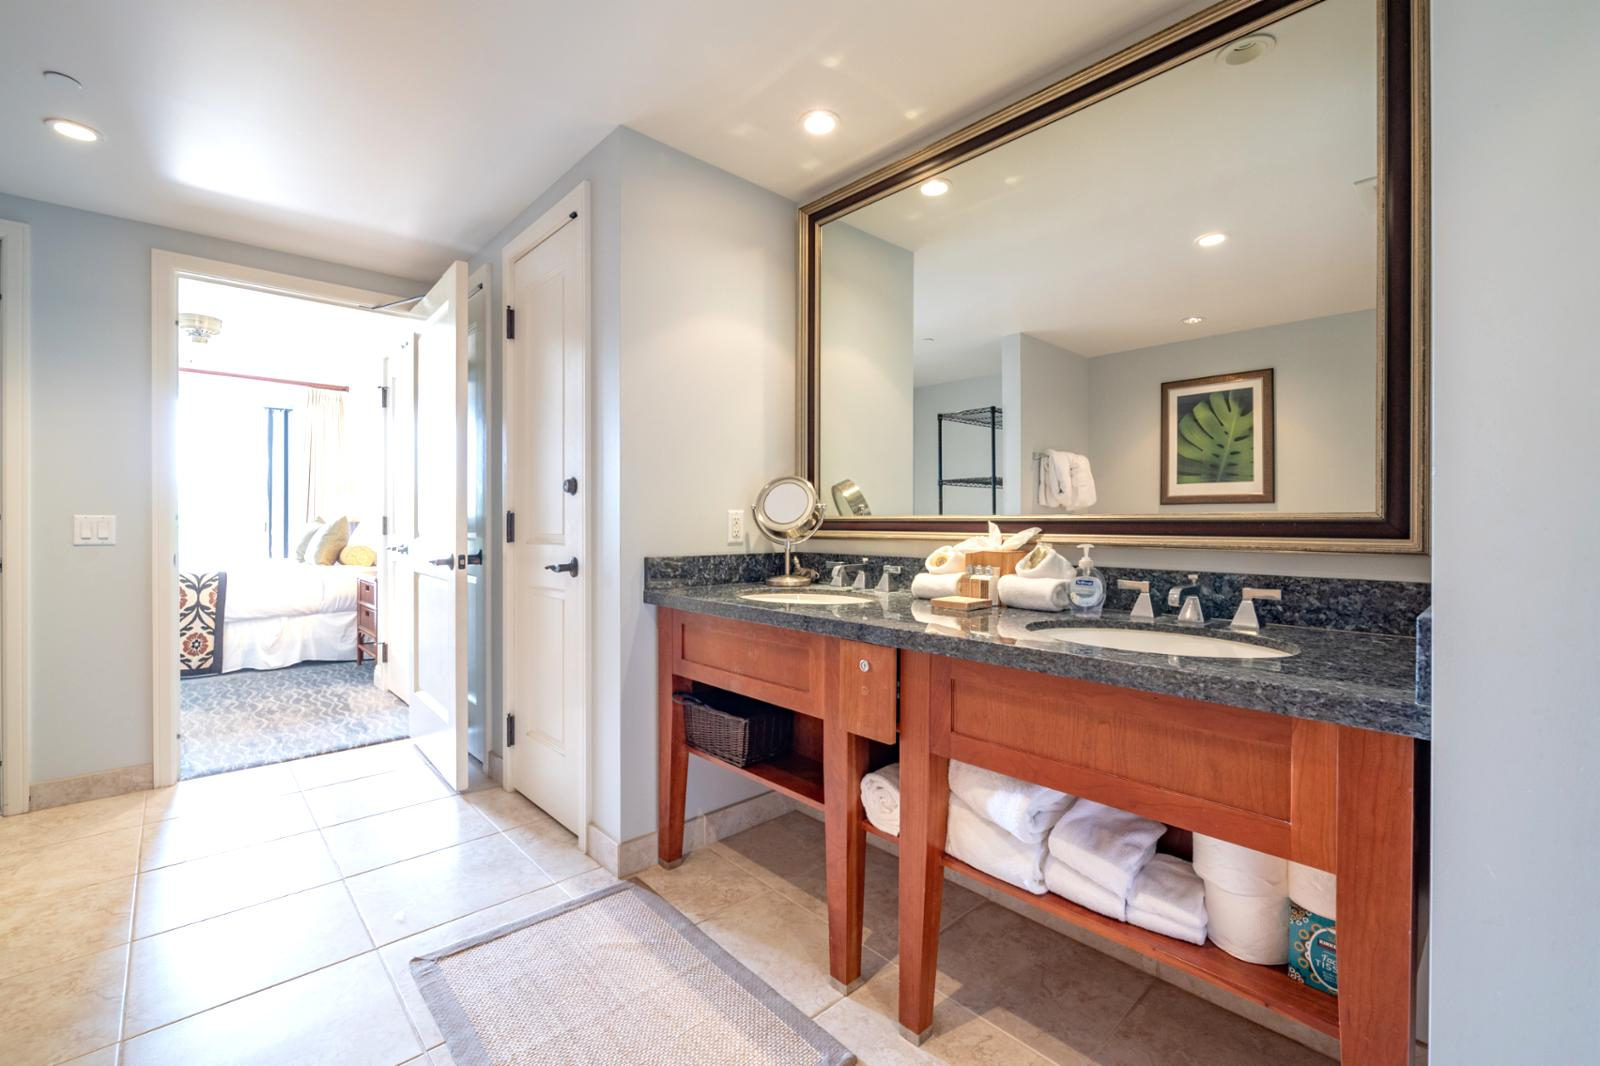 Custom dual sinks with extra large layout